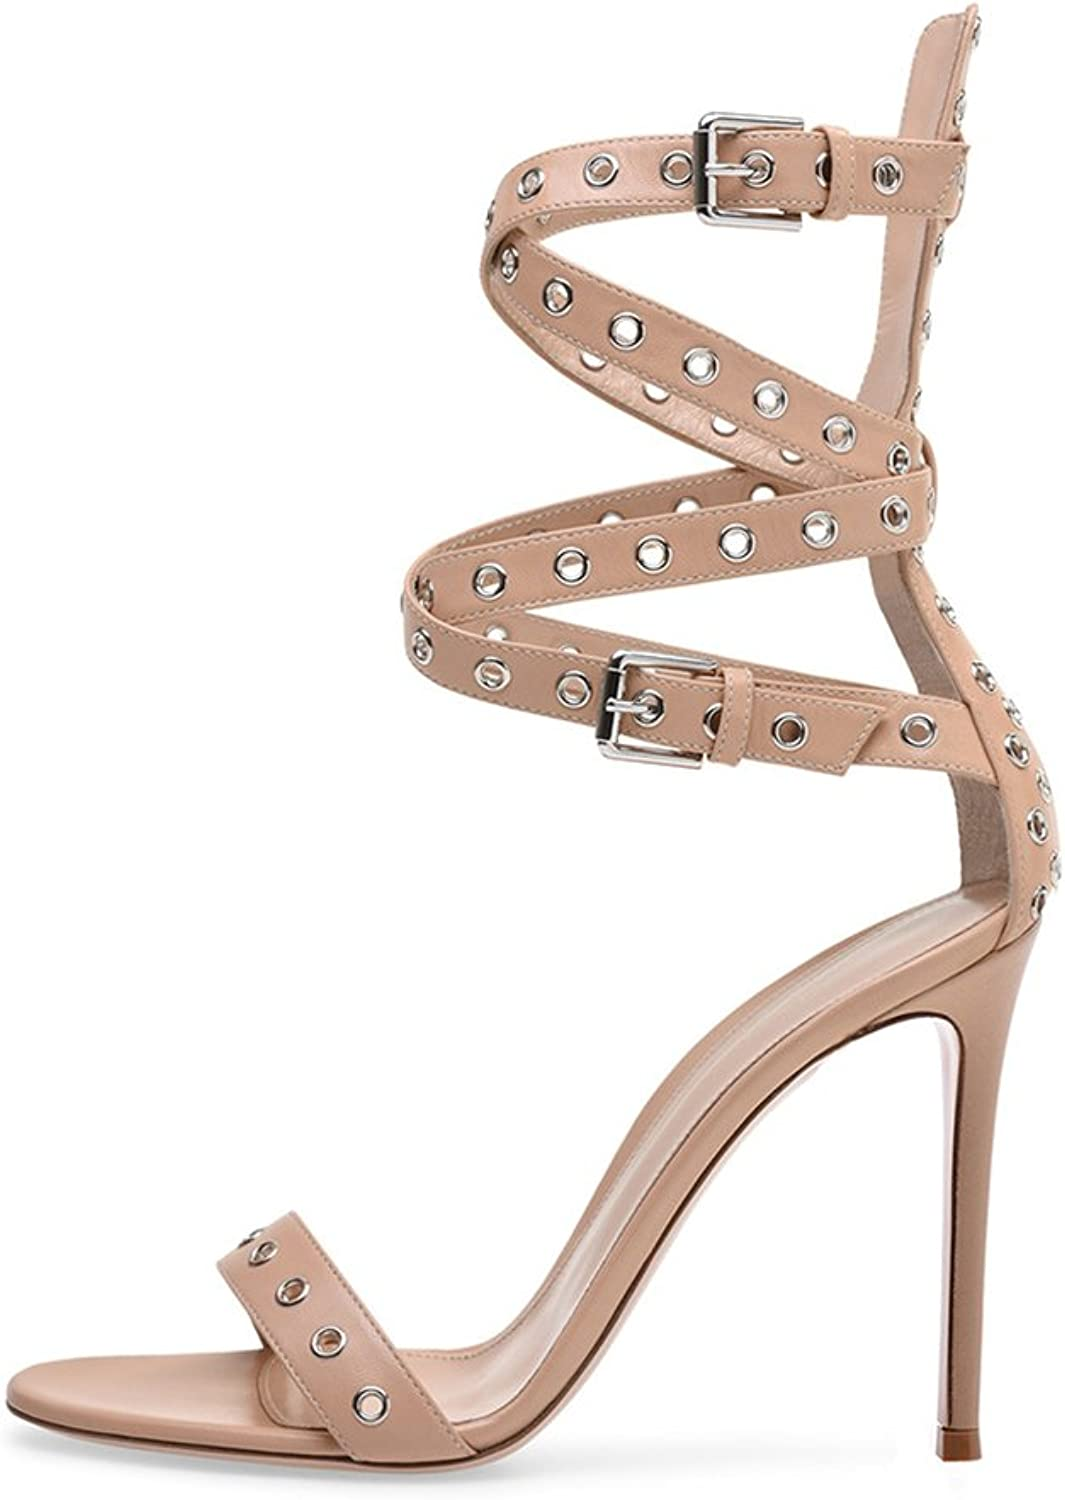 Women's High Heel Sandals Nude Sexy Sandals Buckle Cross Strap Metal(Heel Height  11-13cm)